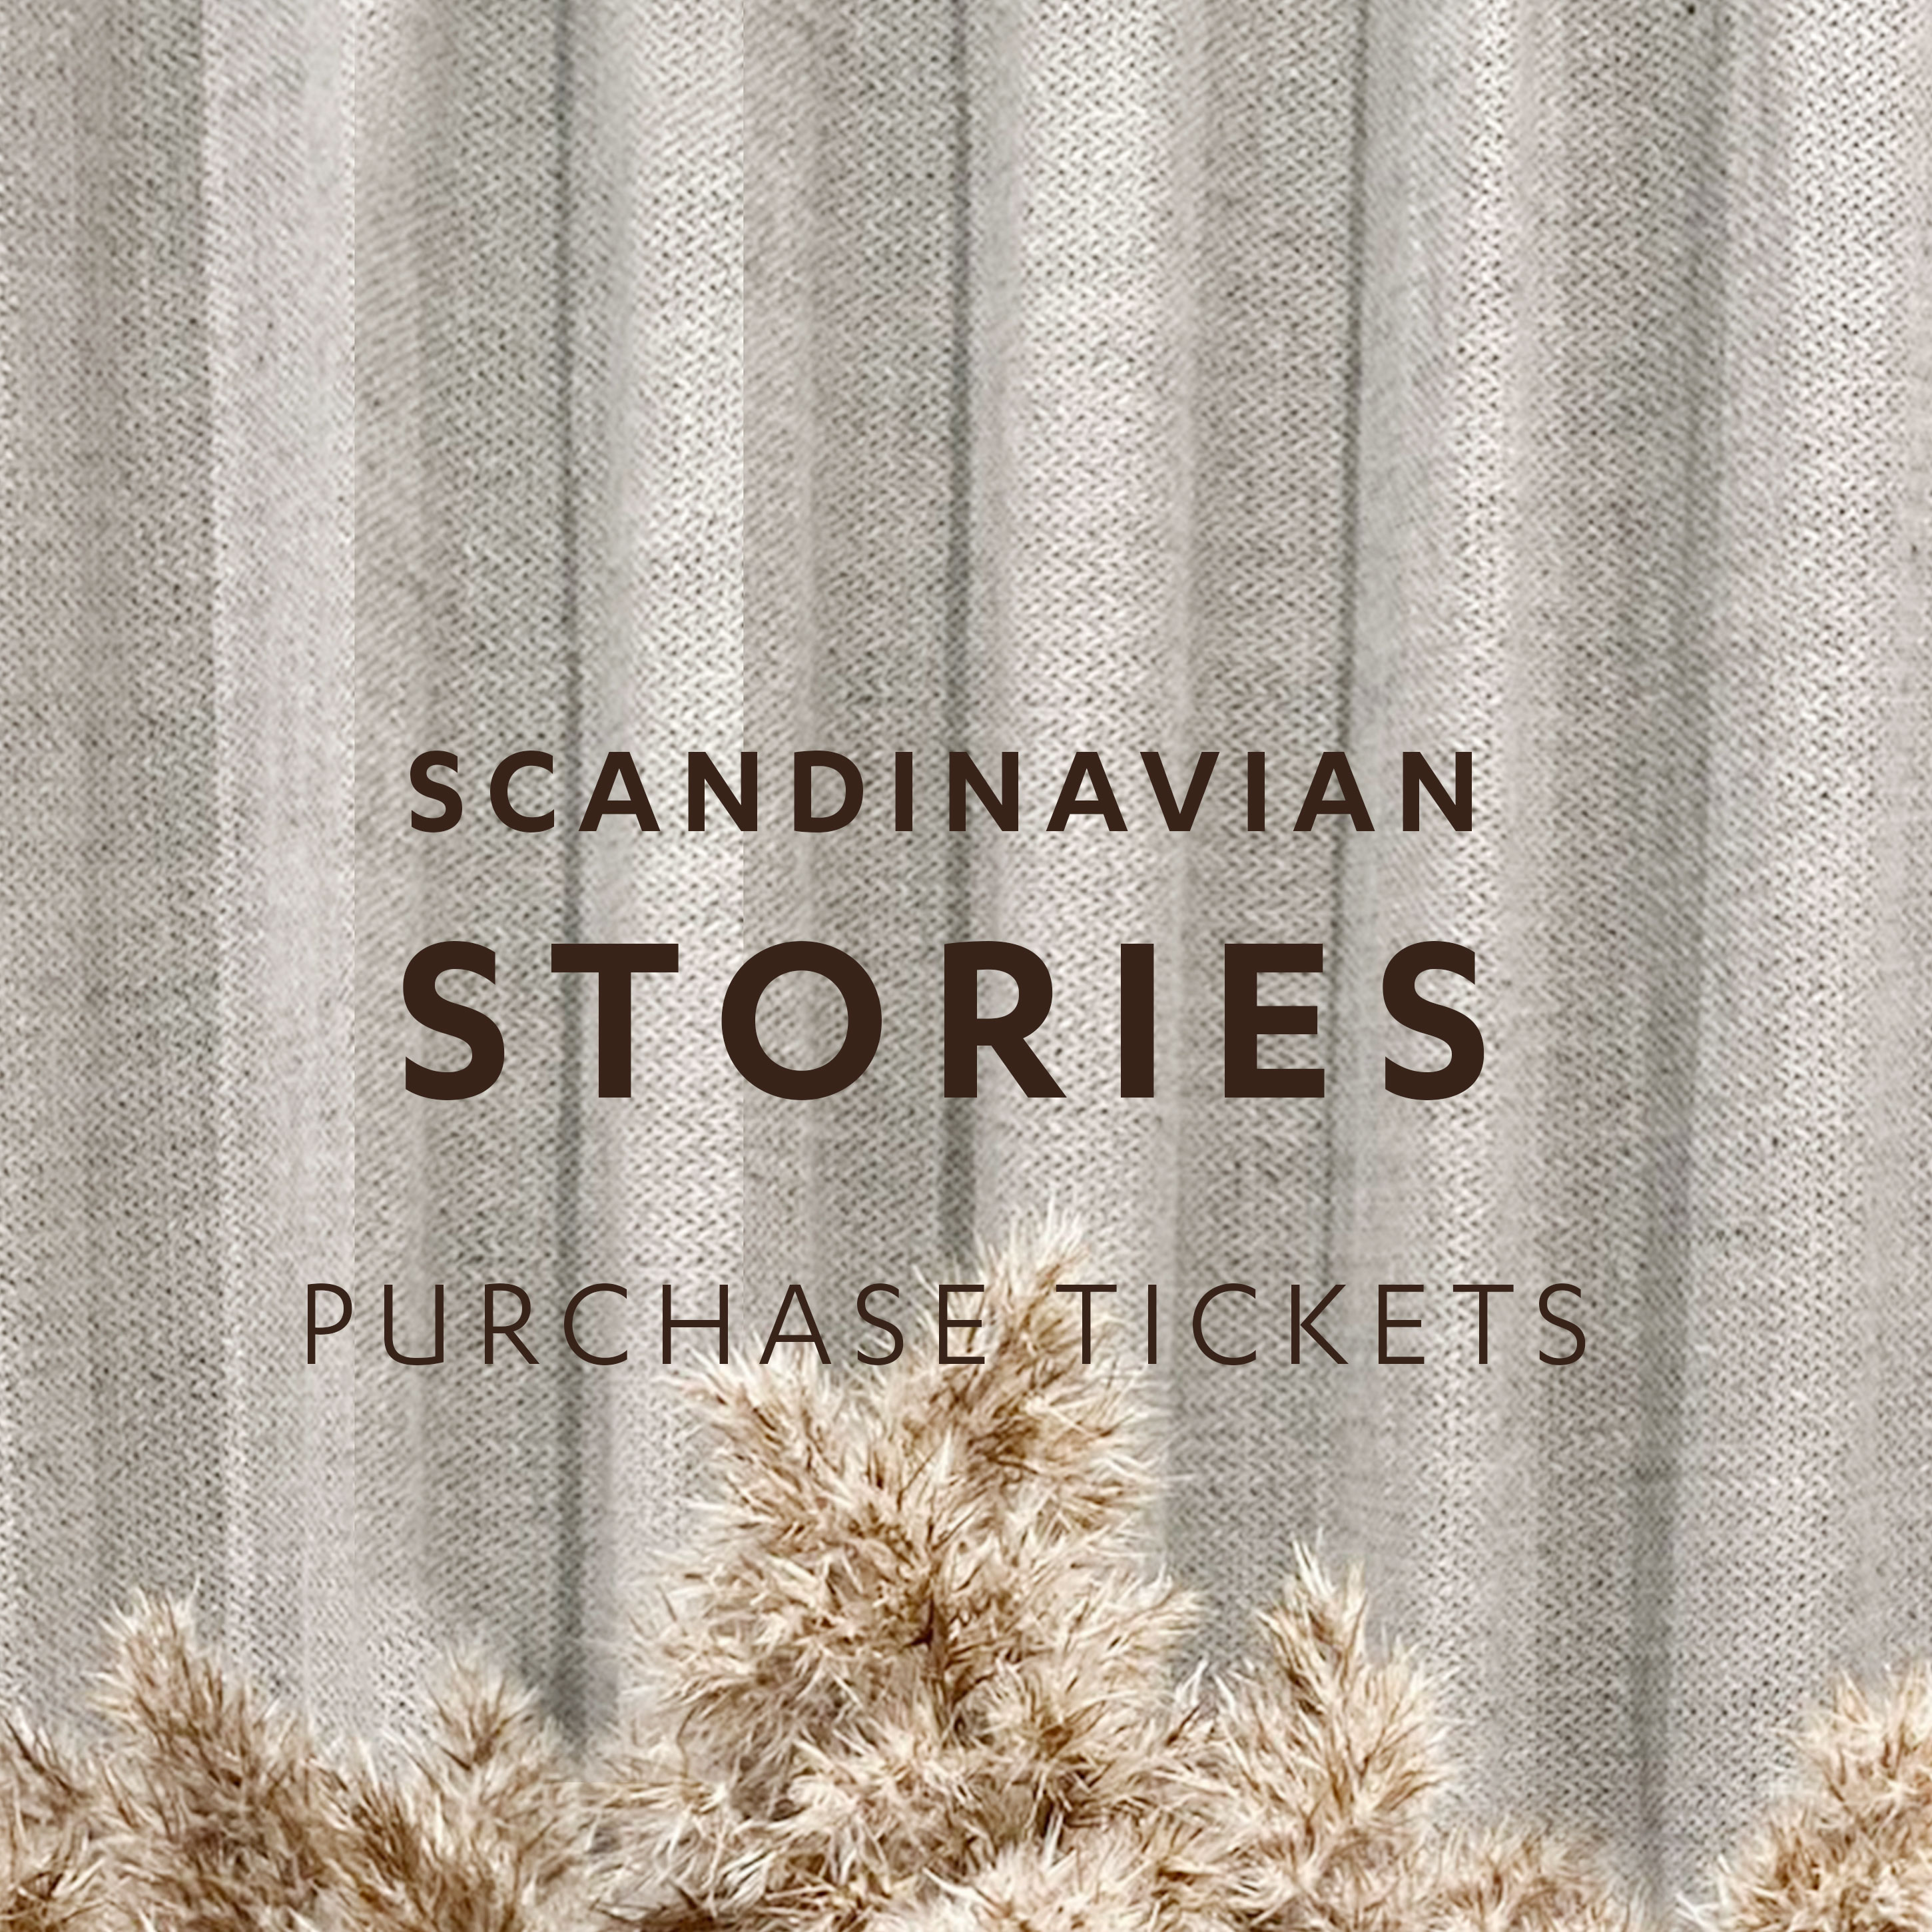 Scandinavian-Stories-Purchase-Tickets